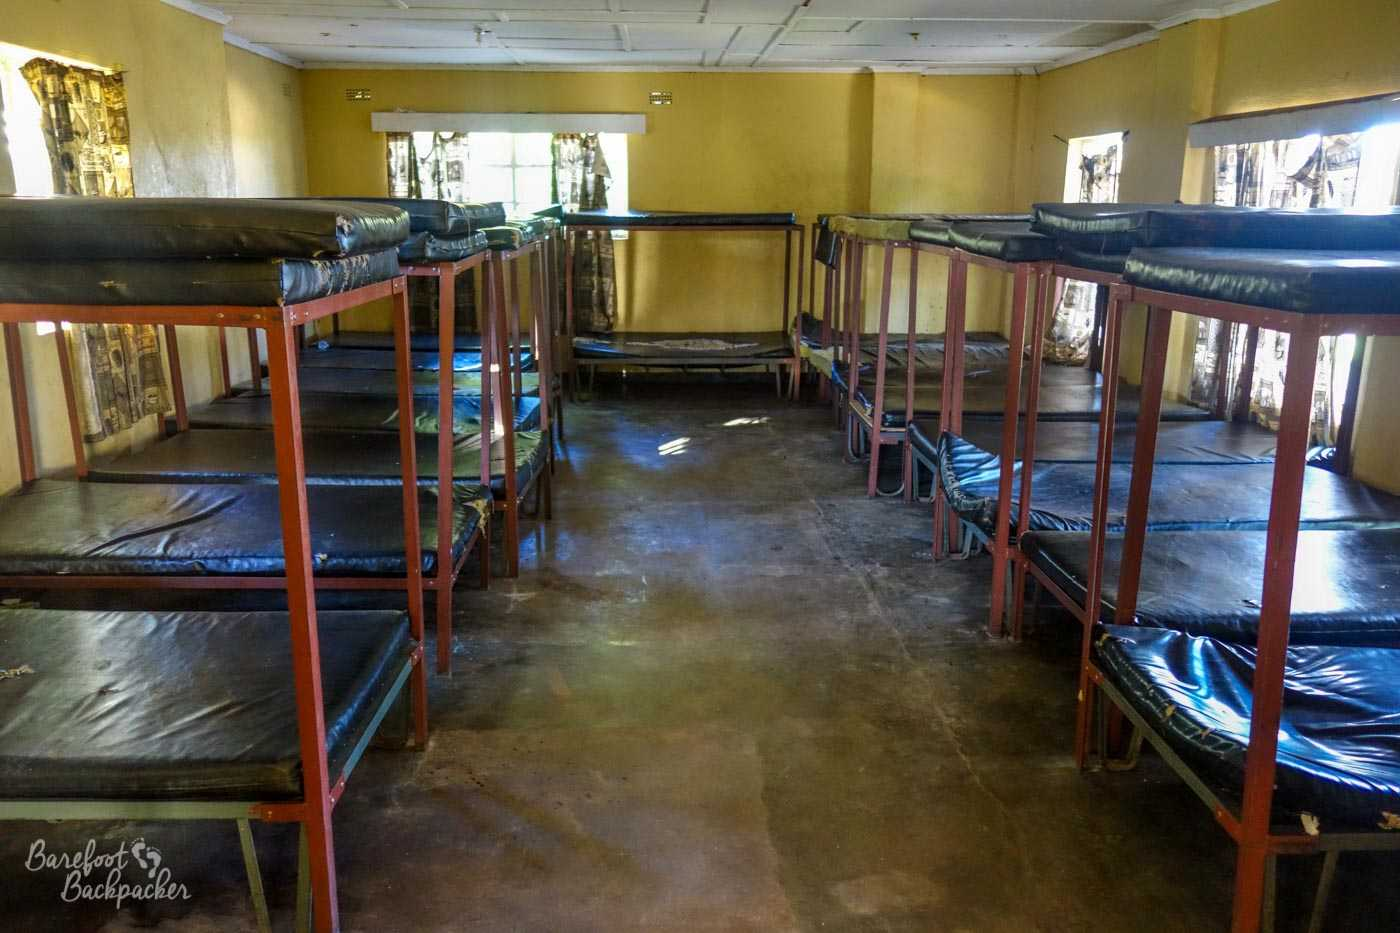 The empty, austere, minimalist, dorm room – the cheapest accommodation available. There's 28 beds in shot, in very close-fitting metal two-bunk beds, and there's a smaller room behind the camera with four more bunks.